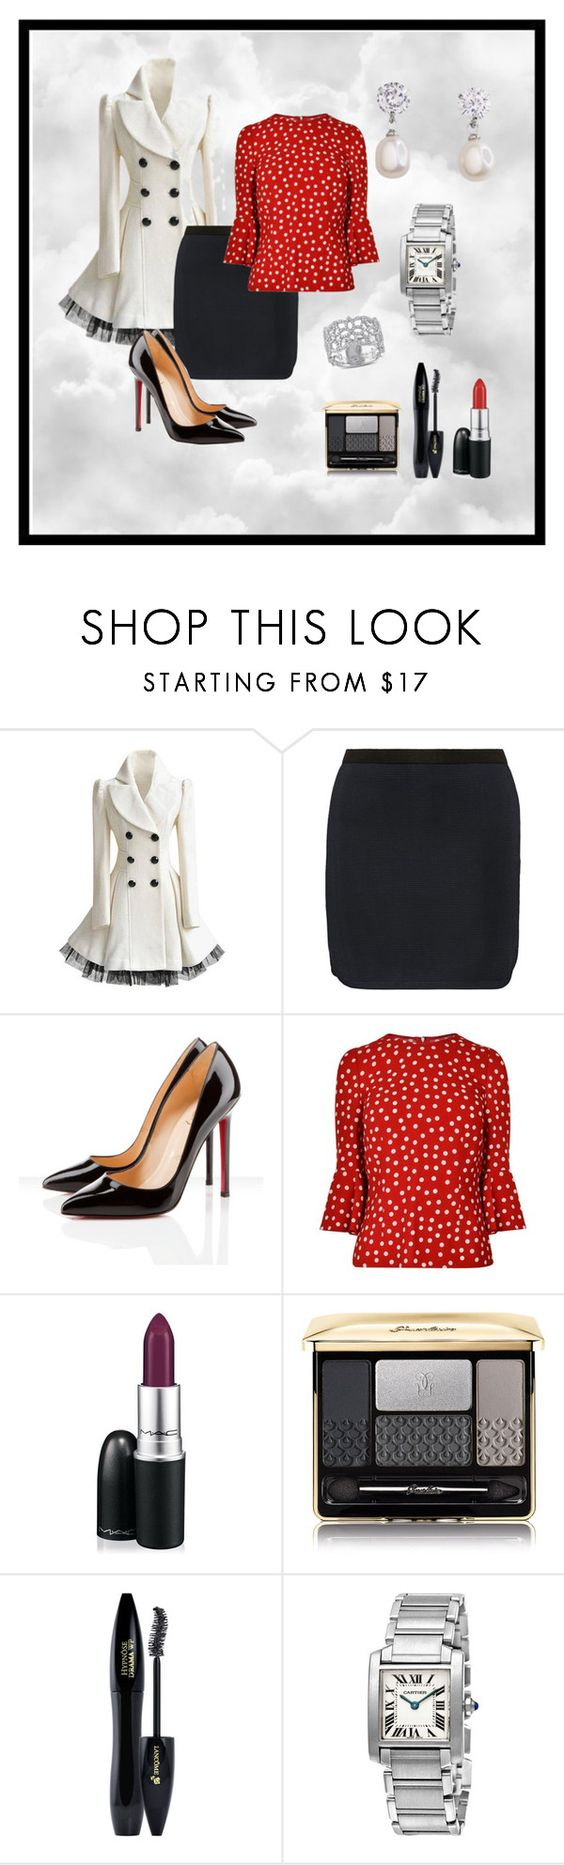 """retro"" by xan86 ❤ liked on Polyvore featuring Isabel Marant, Christian Louboutin, Dolce&Gabbana, MAC Cosmetics, Guerlain, Lancôme, Amour, women's clothing, women's fashion and women"